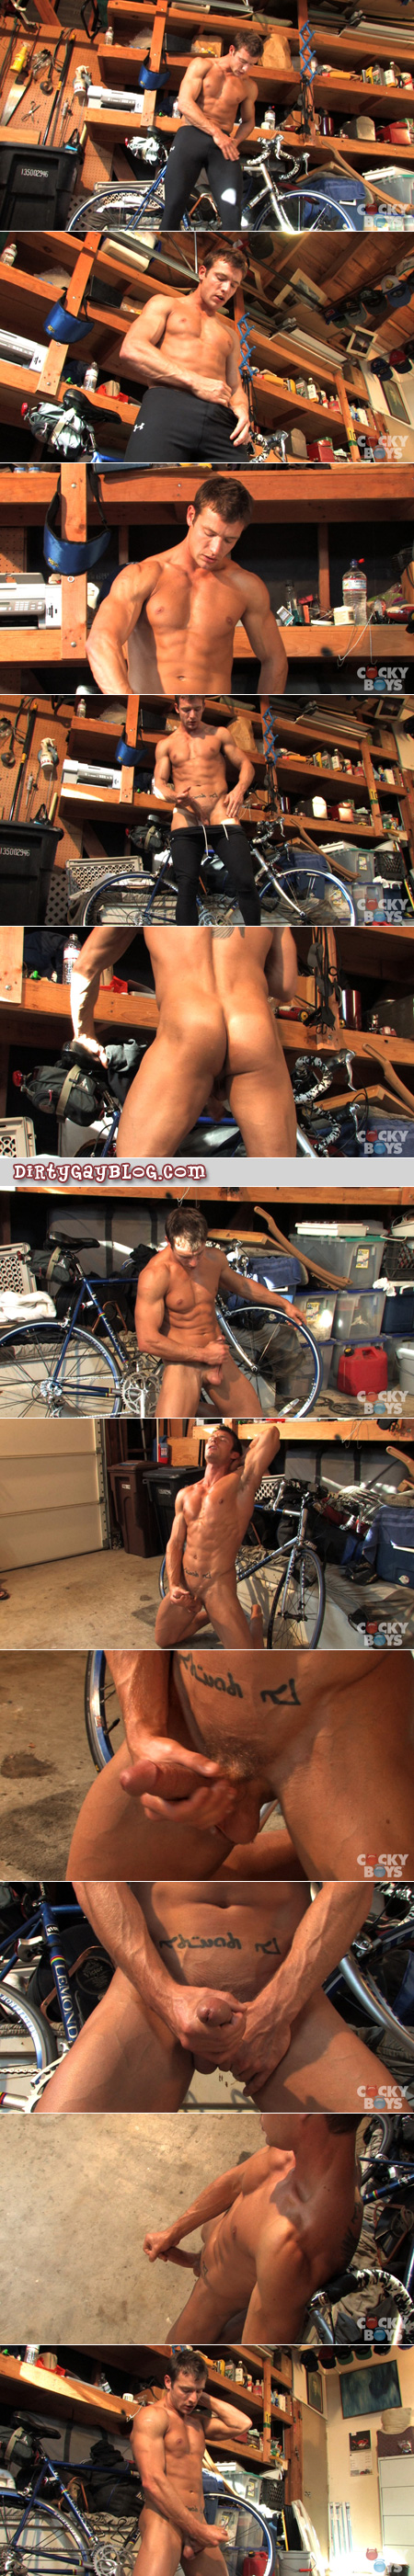 Muscular young athlete puts his bike in the garage before working his erection through his tight lycra compression pants.